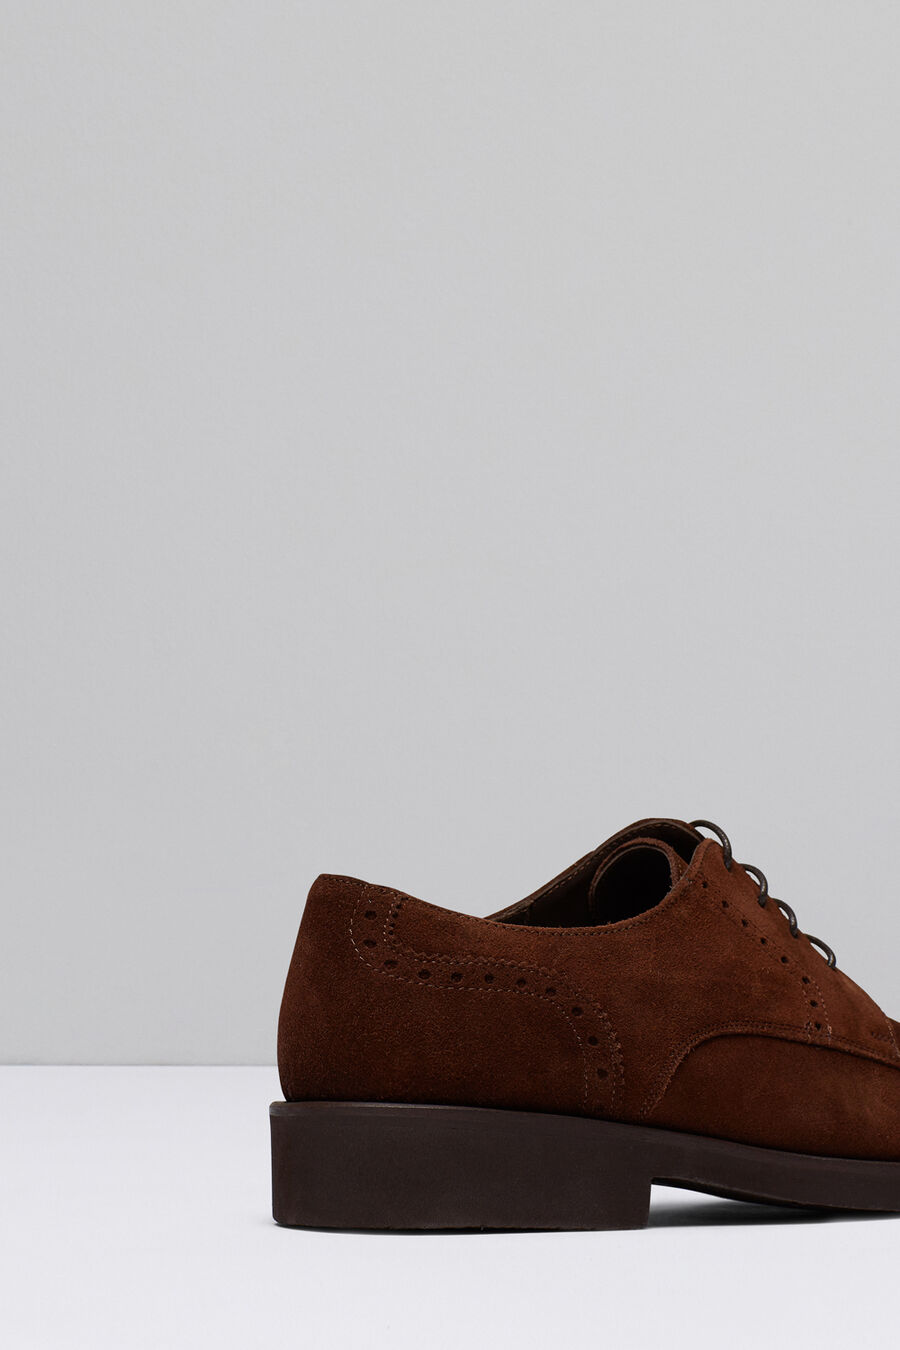 Split leather Blucher shoes with plain uppers